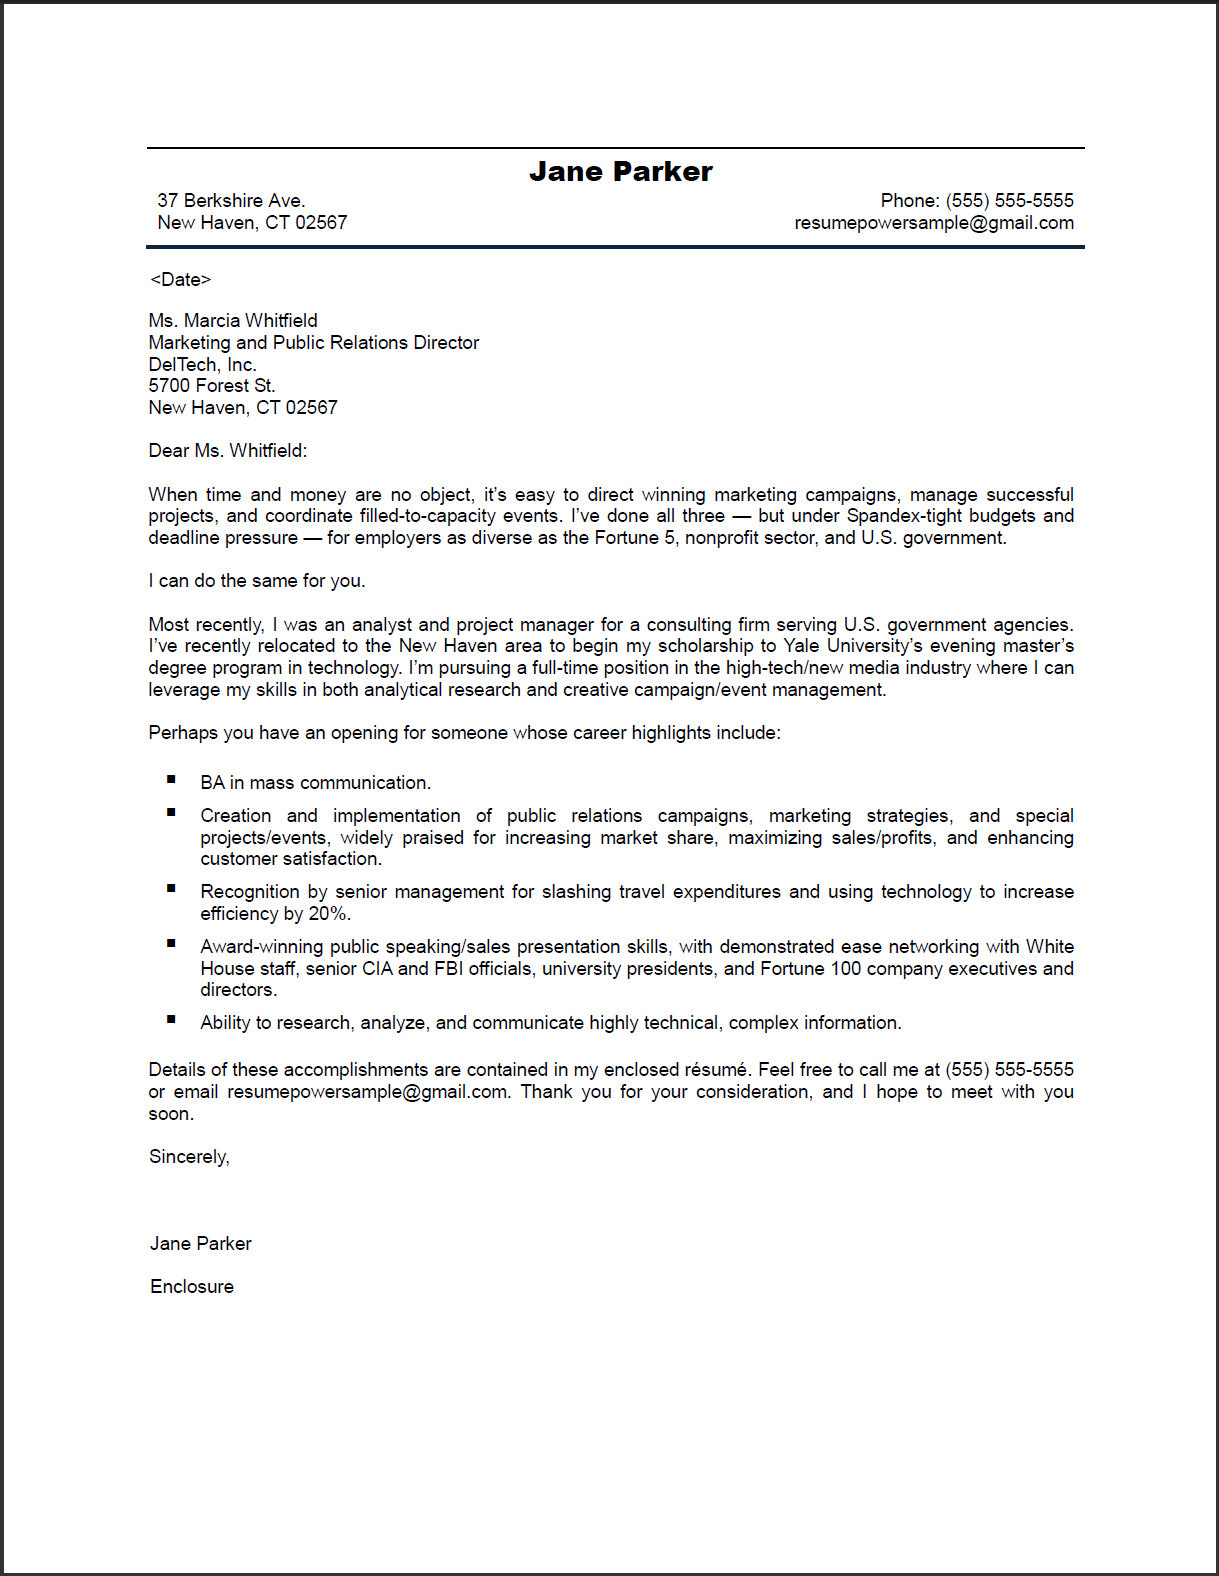 Body Of Email With Resume And Cover Letter Attached. how to write ...